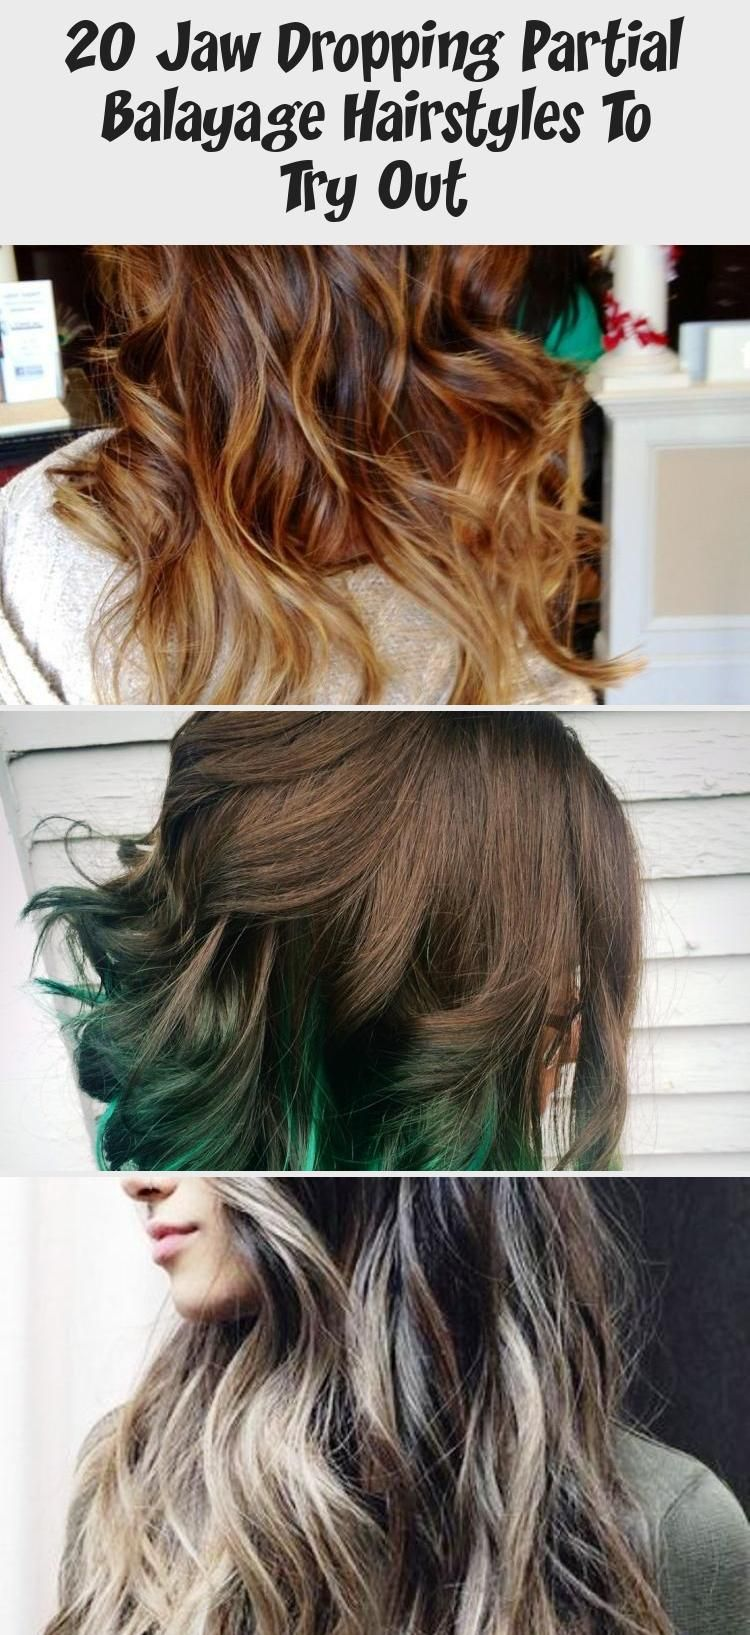 20 Jaw Dropping Partial Balayage Hairstyles To Try Out In 2020 Balayage Hair Hair Styles Partial Balayage